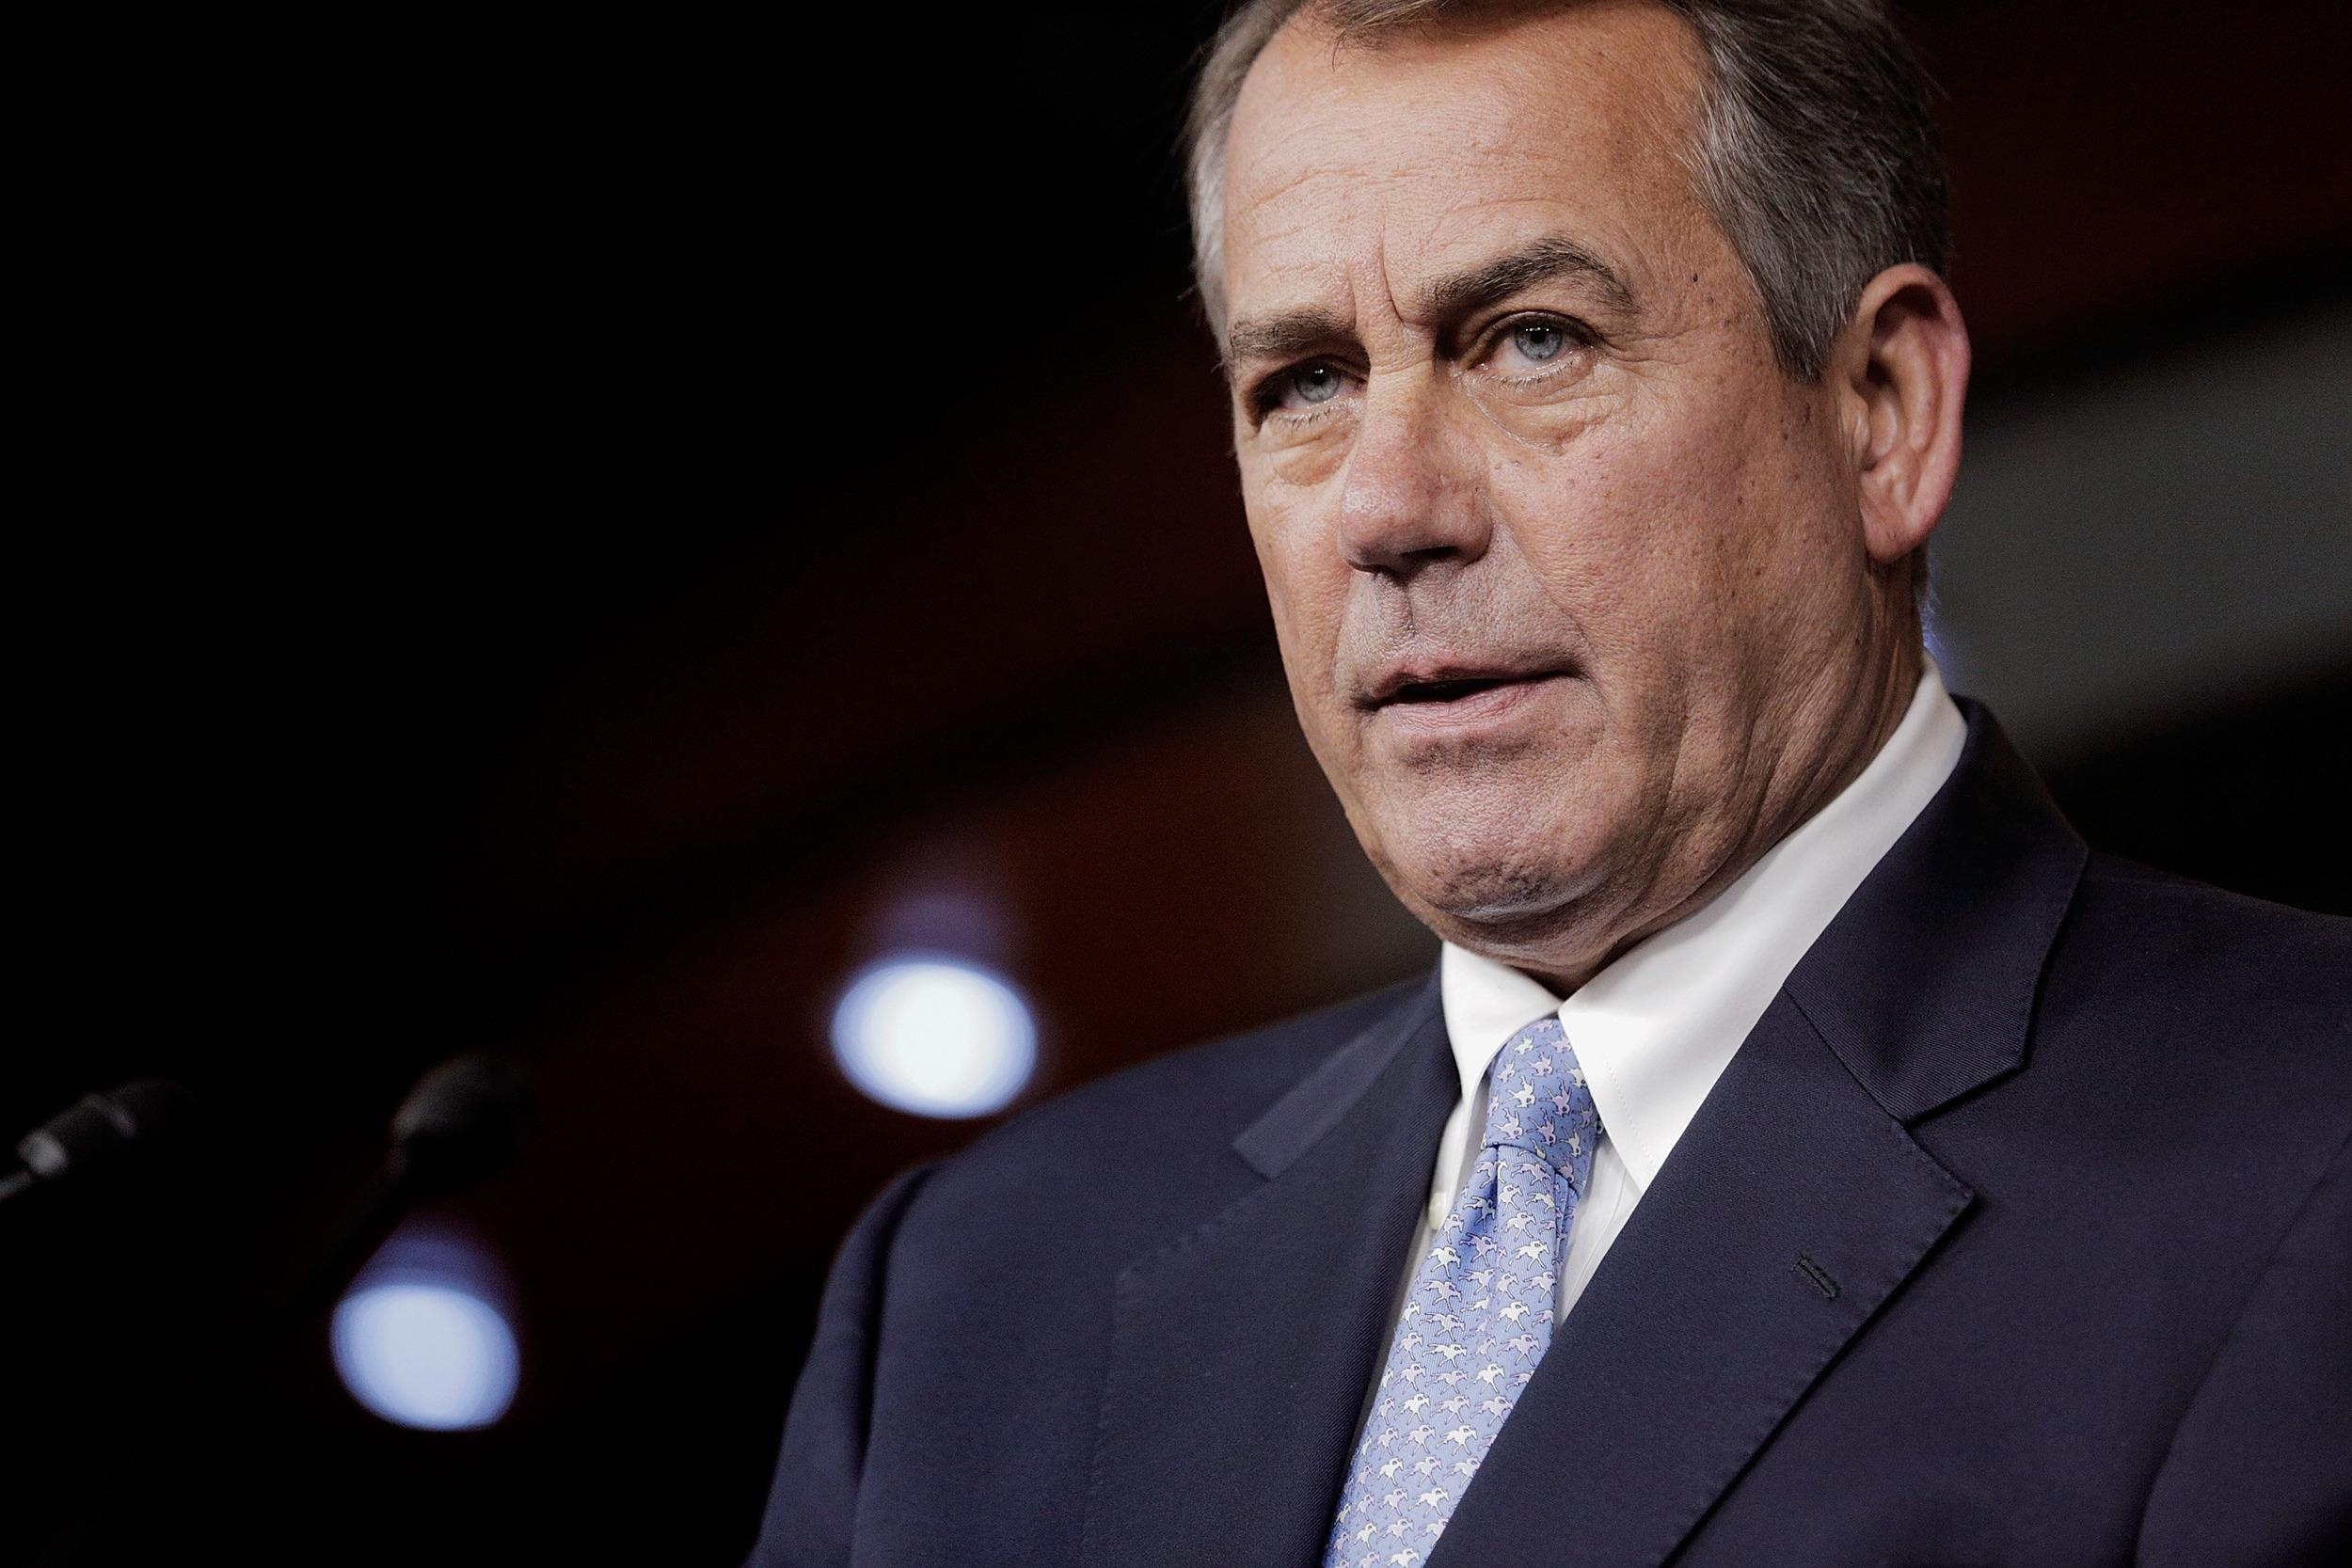 Image: House Speaker Boehner Holds His Weekly News Conference